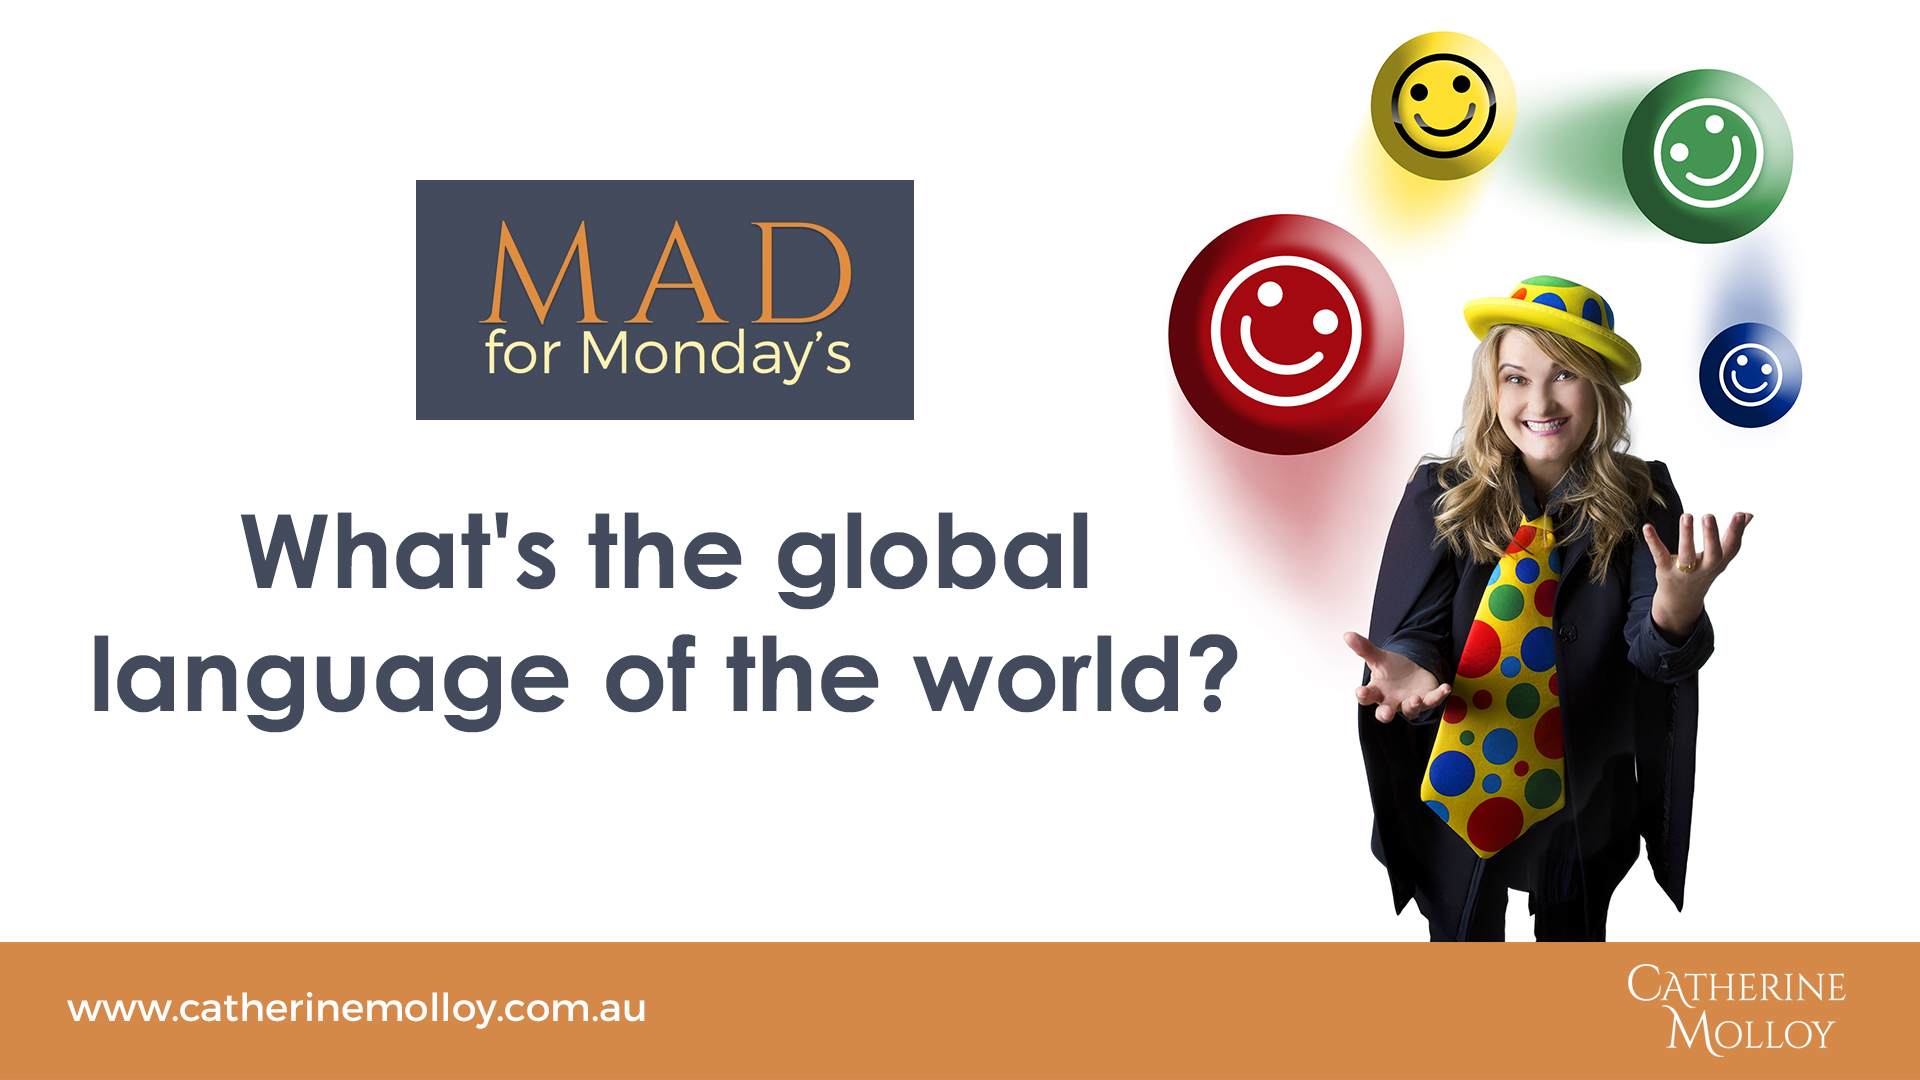 MAD for Monday's – What's the global language of the world?